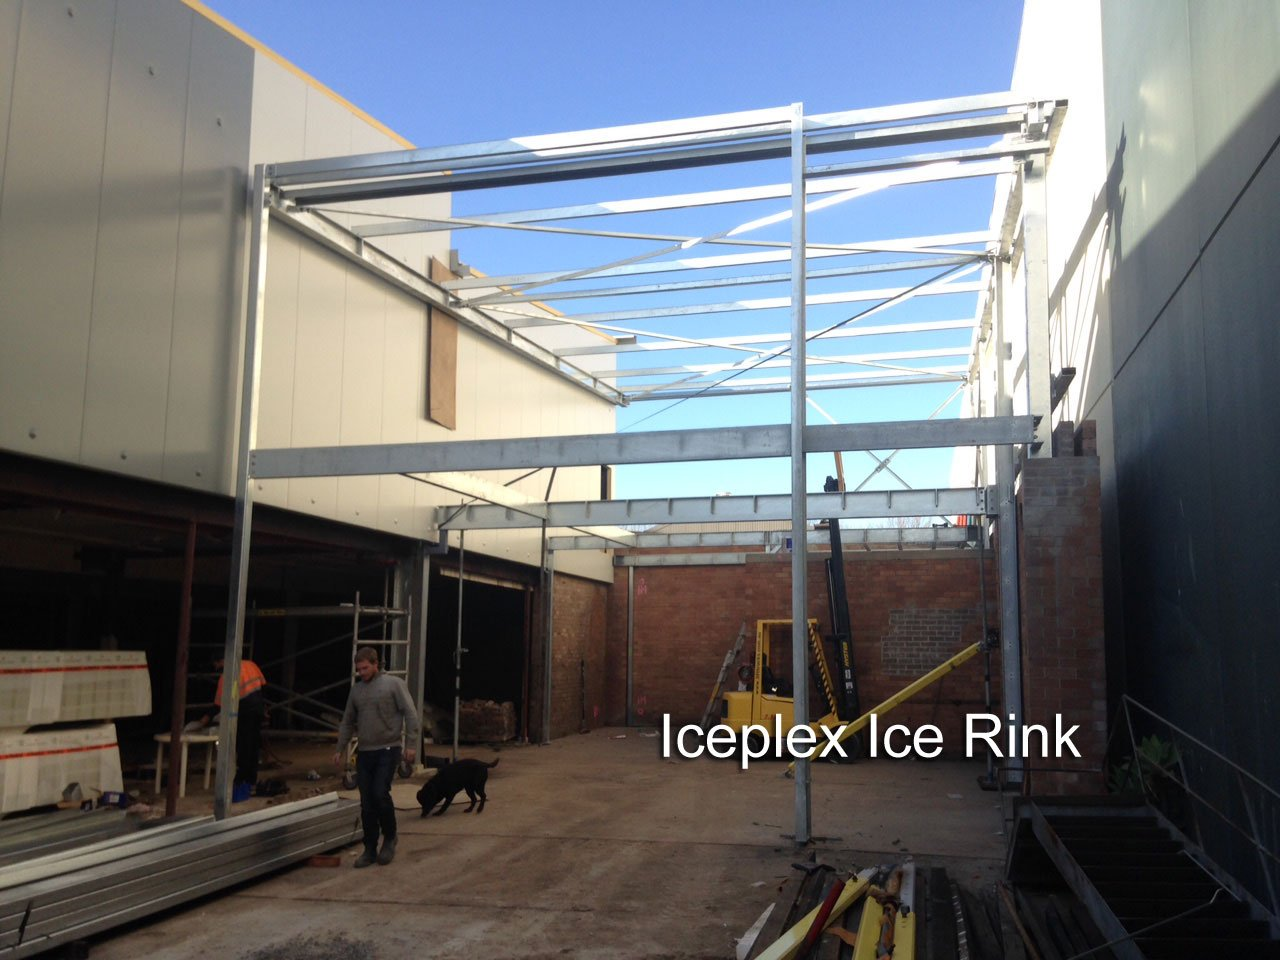 Iceplex-Nearing-Completion-1